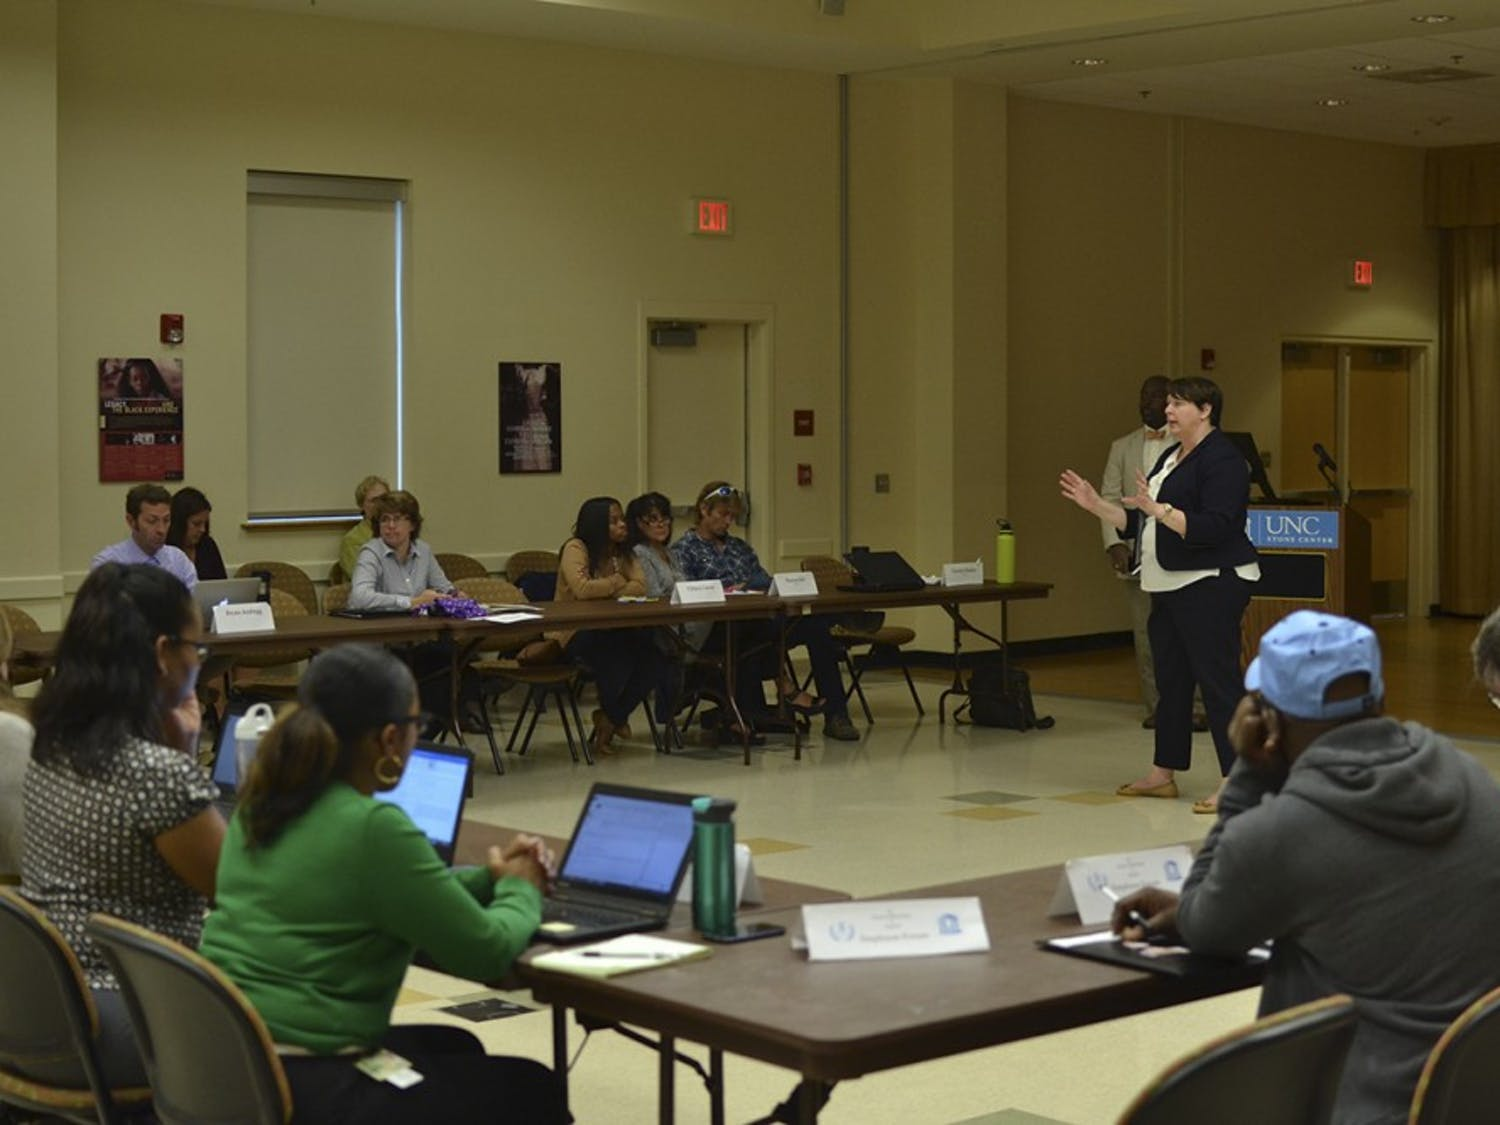 Michele Gretch Carter, newly appointed manager of the Student Stores, discusses her role on campus at an Employee Forum meeting at the Stone Center.